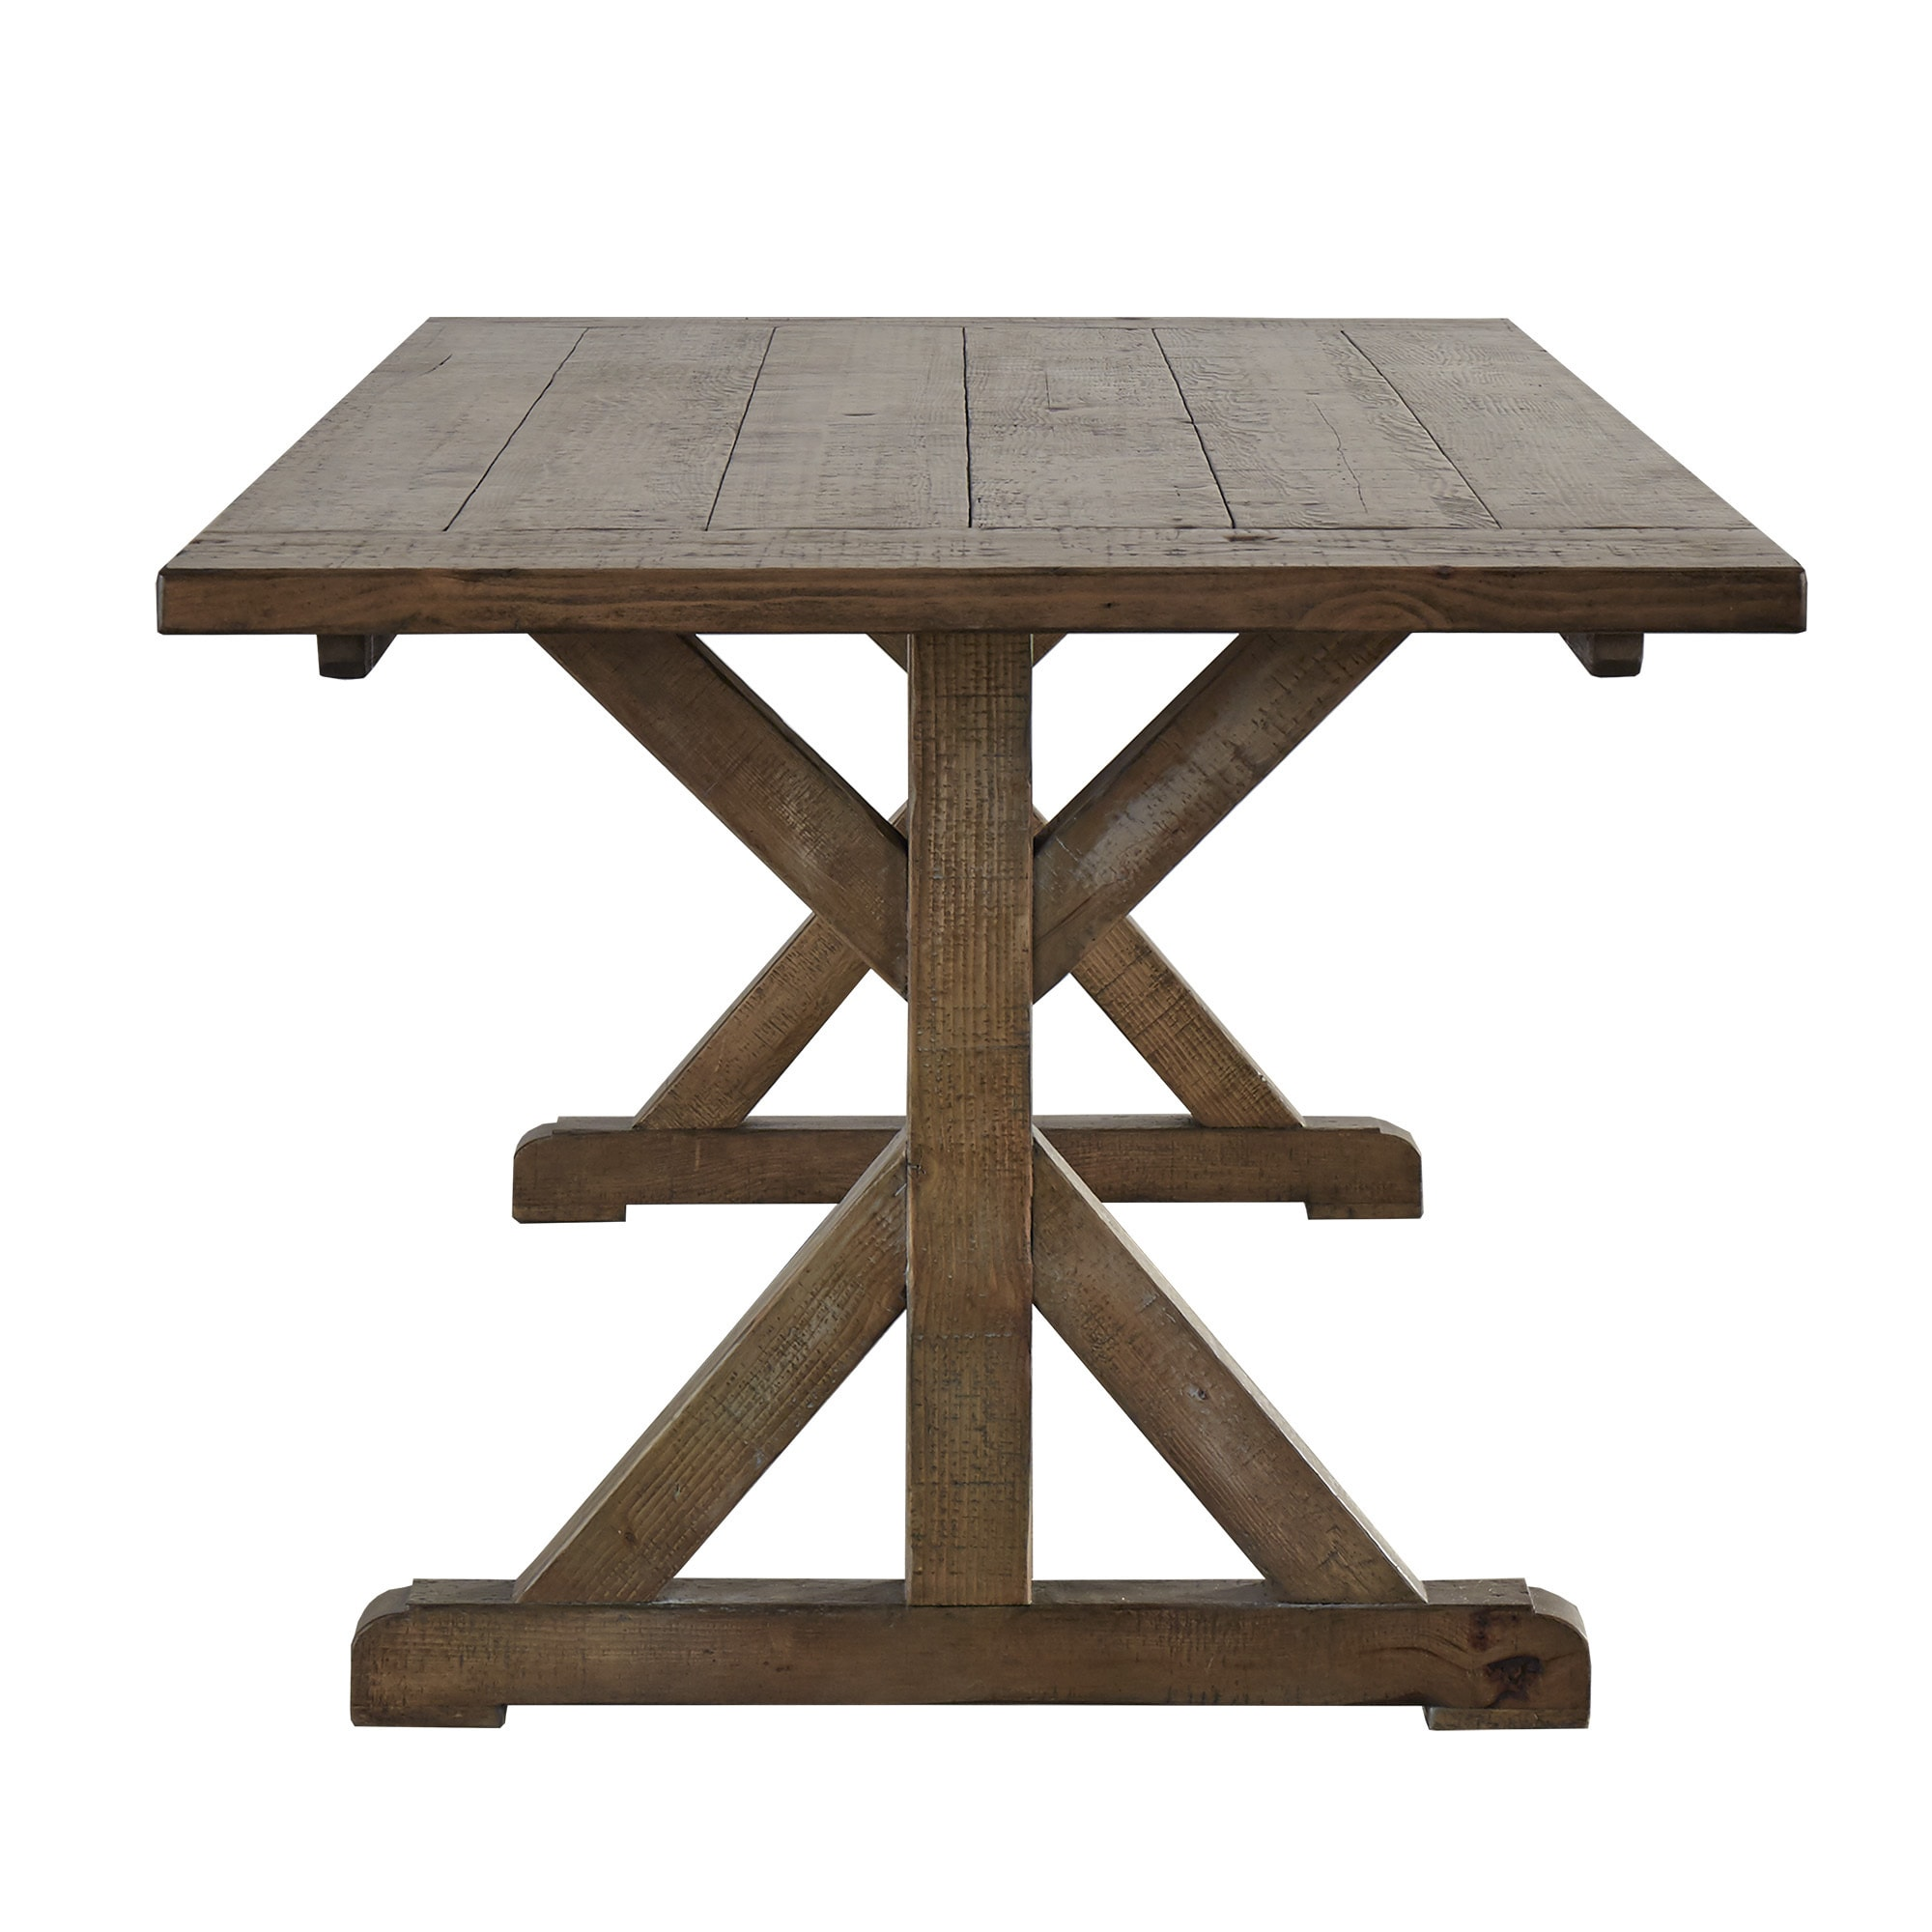 Paloma Rustic Reclaimed Wood Rectangular Trestle Farm Table by iNSPIRE Q  Artisan - Free Shipping Today - Overstock.com - 18845558